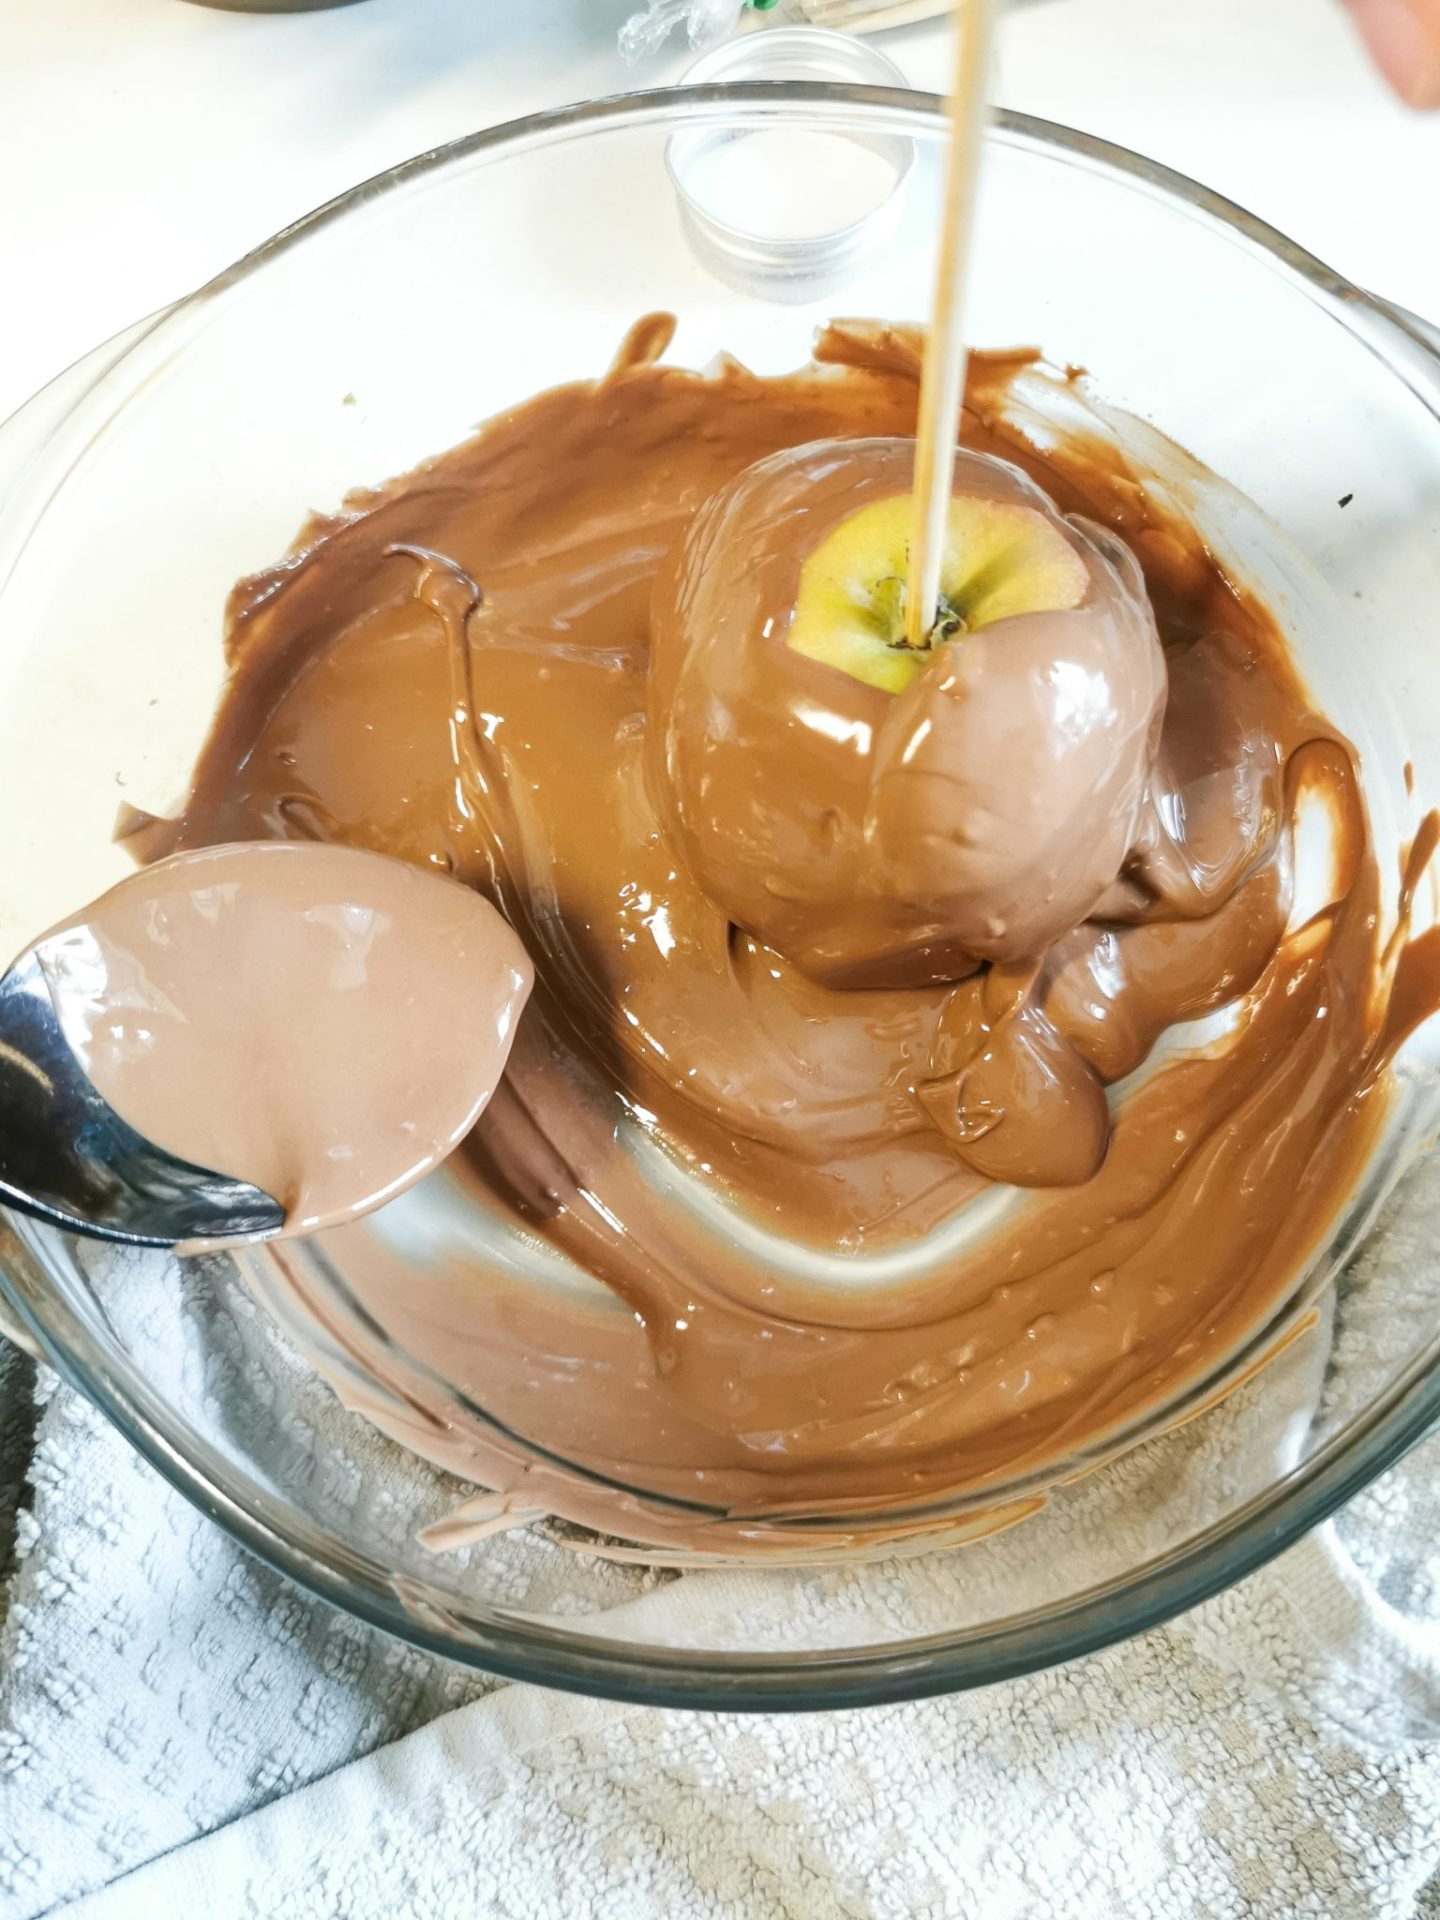 An apple being dipped in chocolate. The side is being covered with chocolate by using a spoon.